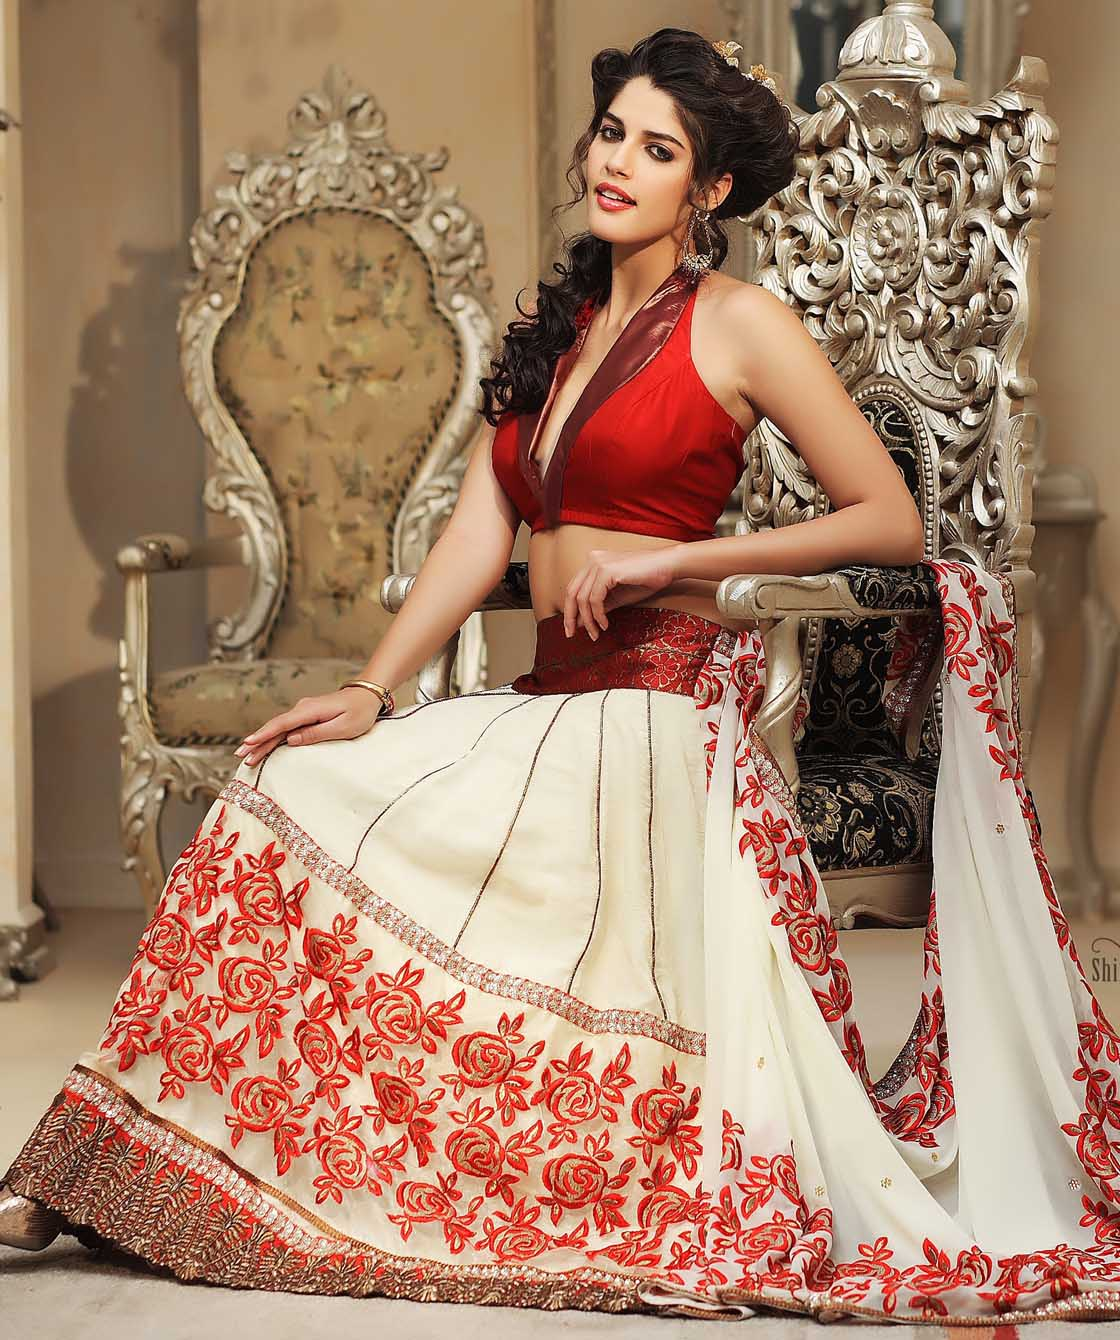 Bridal pakistani dresses suits mehndi designs pic for Dress for a wedding party